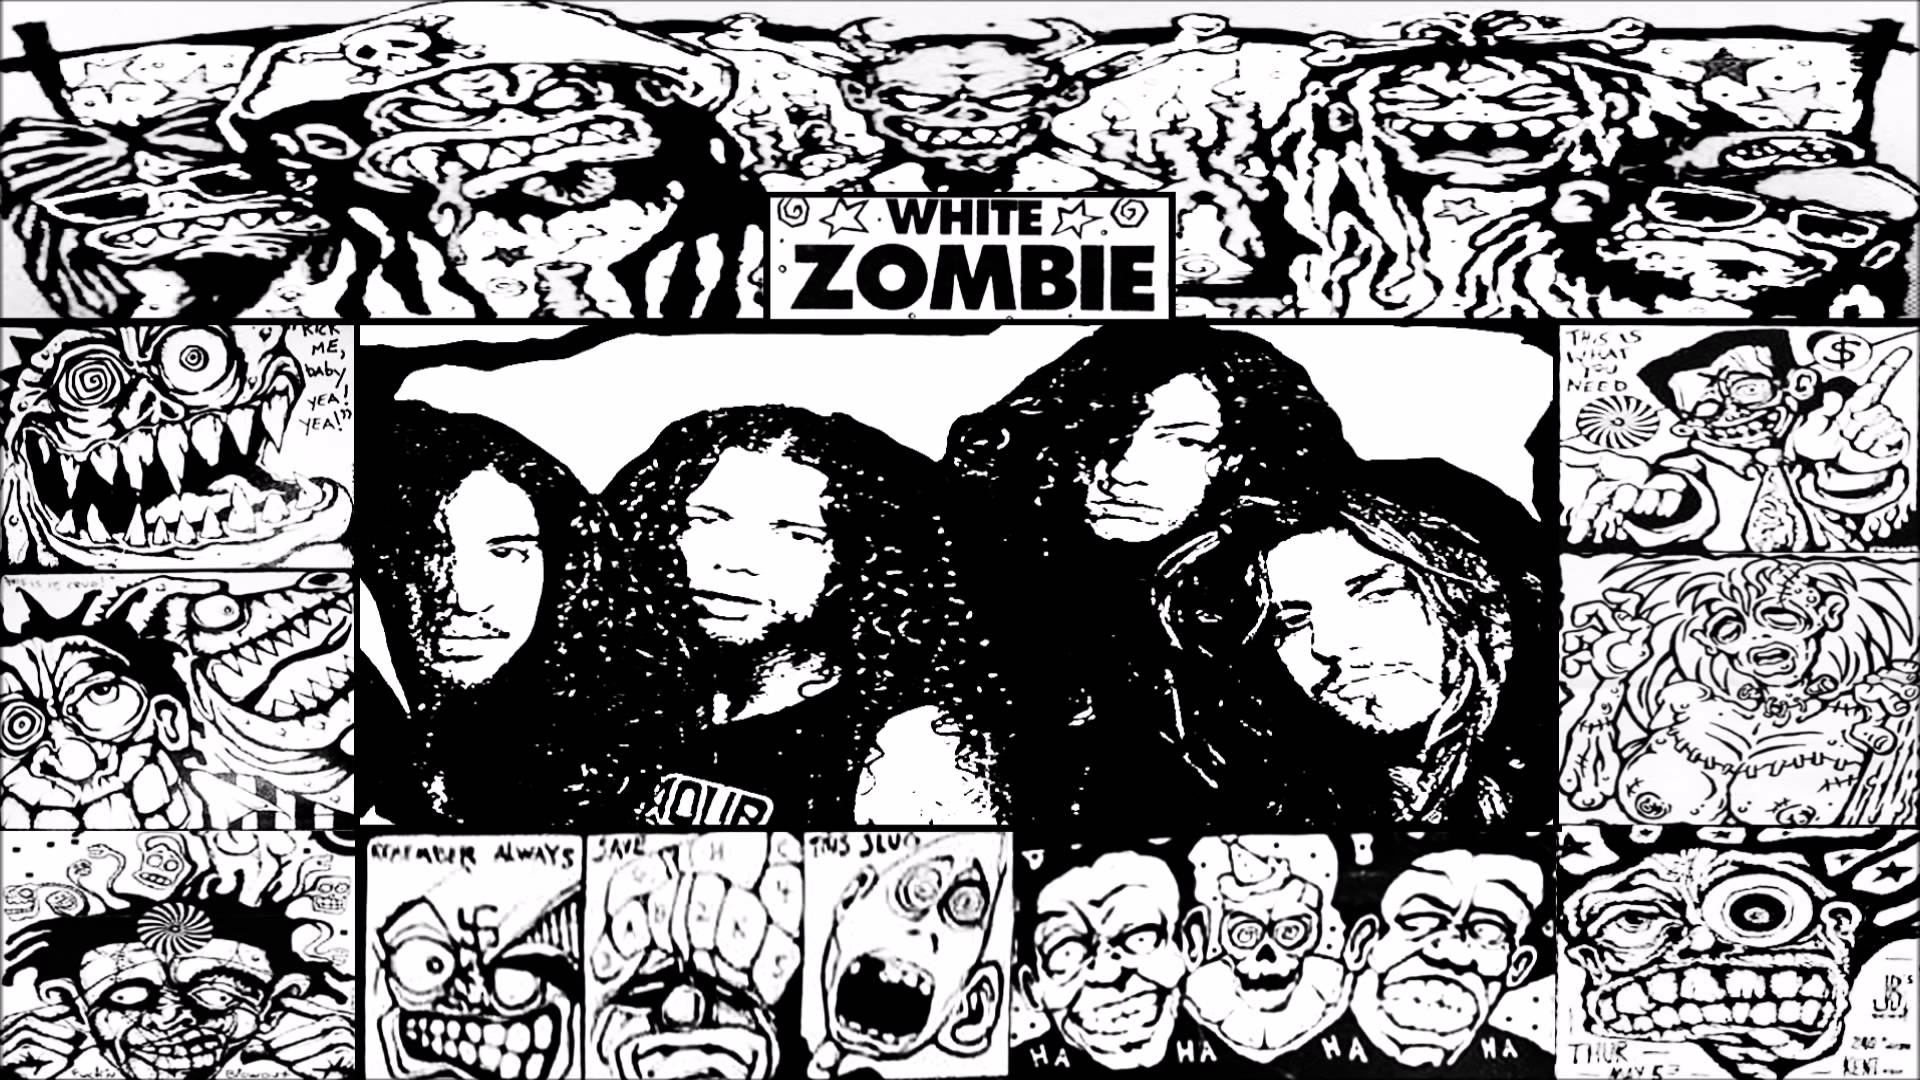 1920x1080 > White Zombie Wallpapers